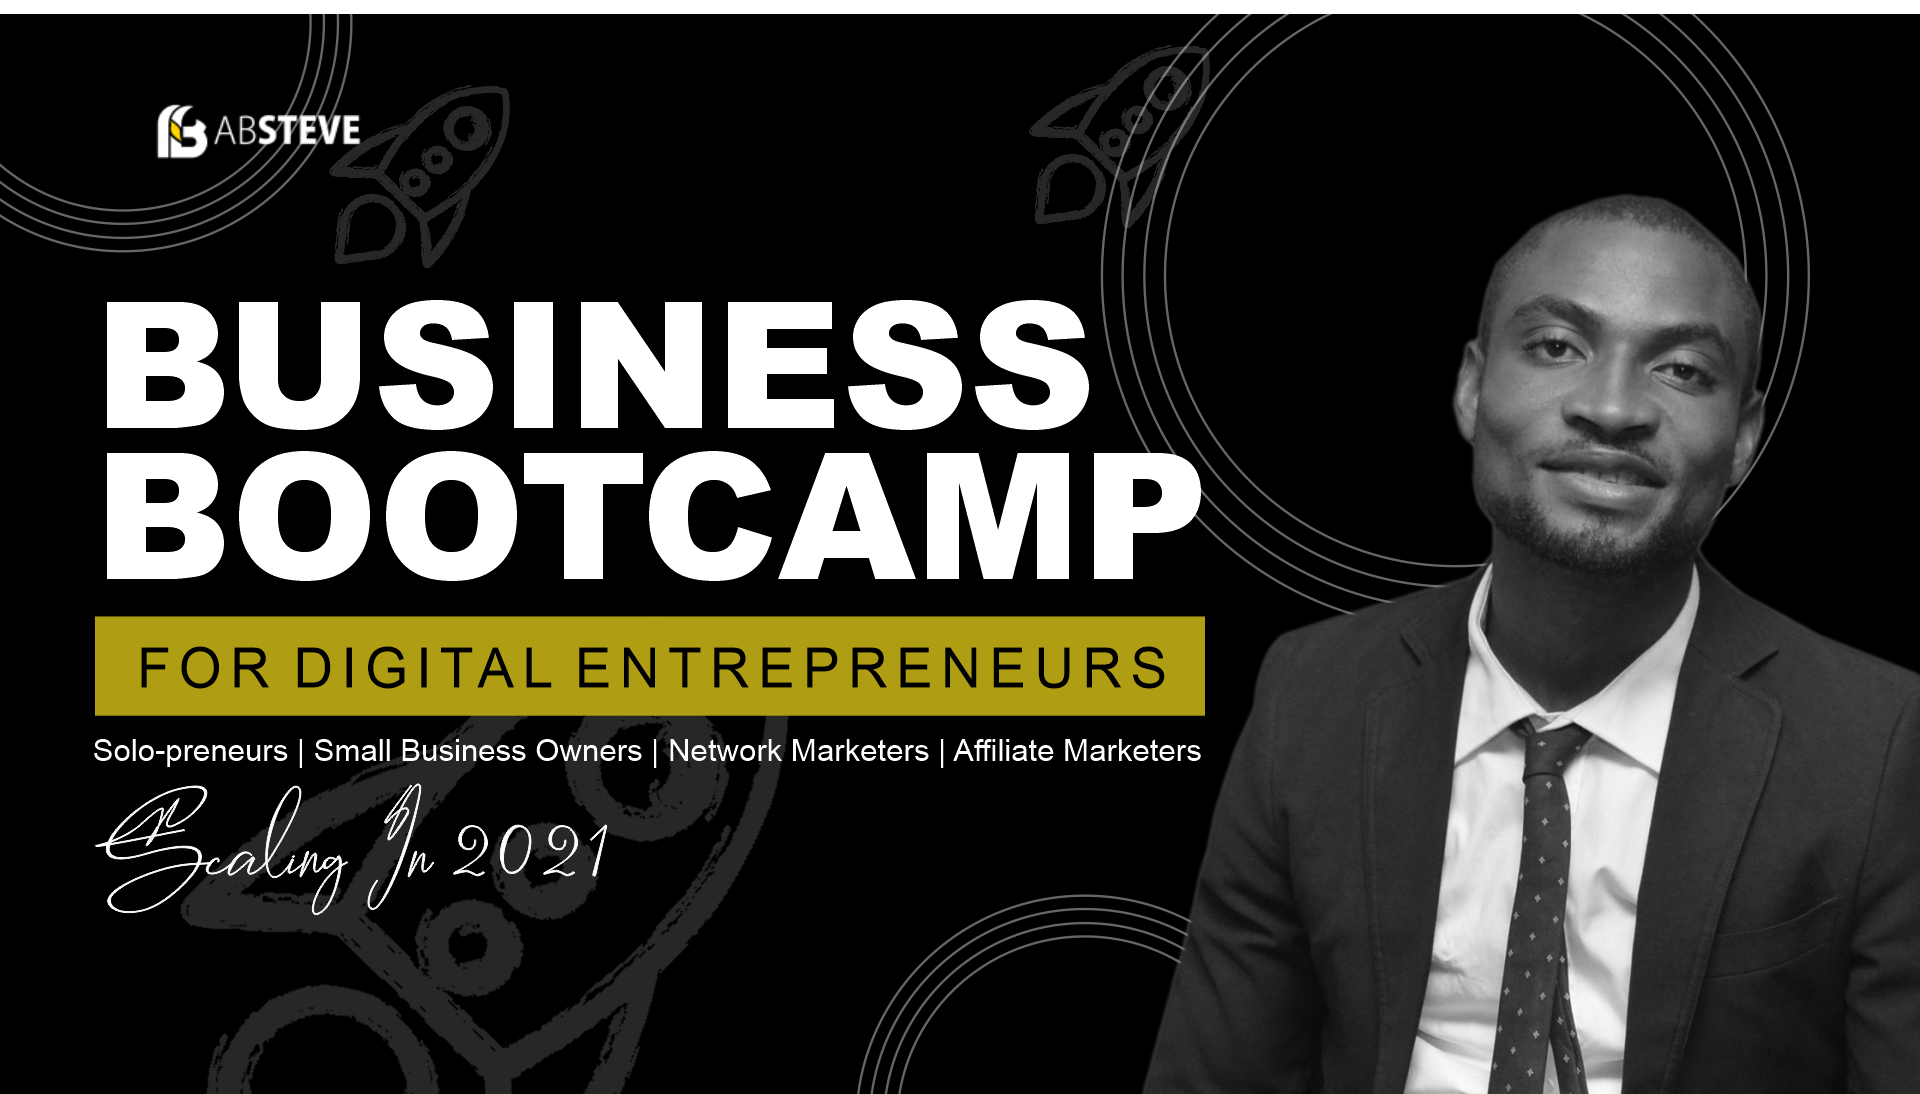 Business Bootcamp For Digital Entrepreneurs